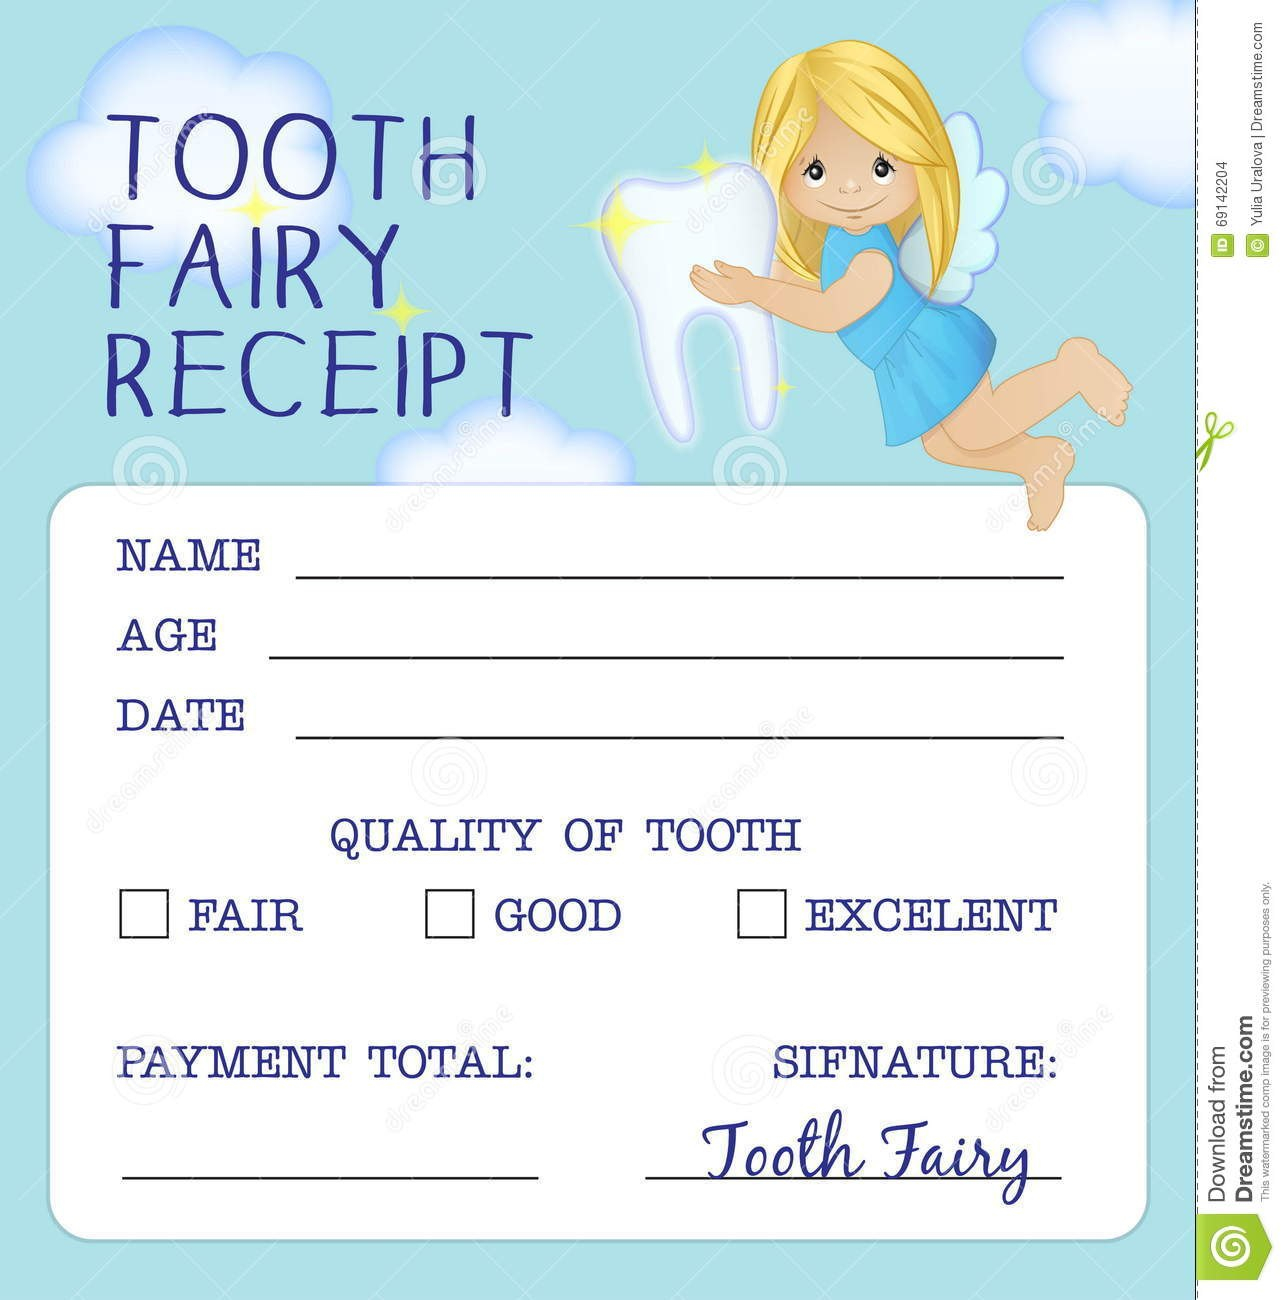 Tooth Fairy Receipt Certificate Design Stock Vector  Illustration Within Tooth Fairy Certificate Template Free